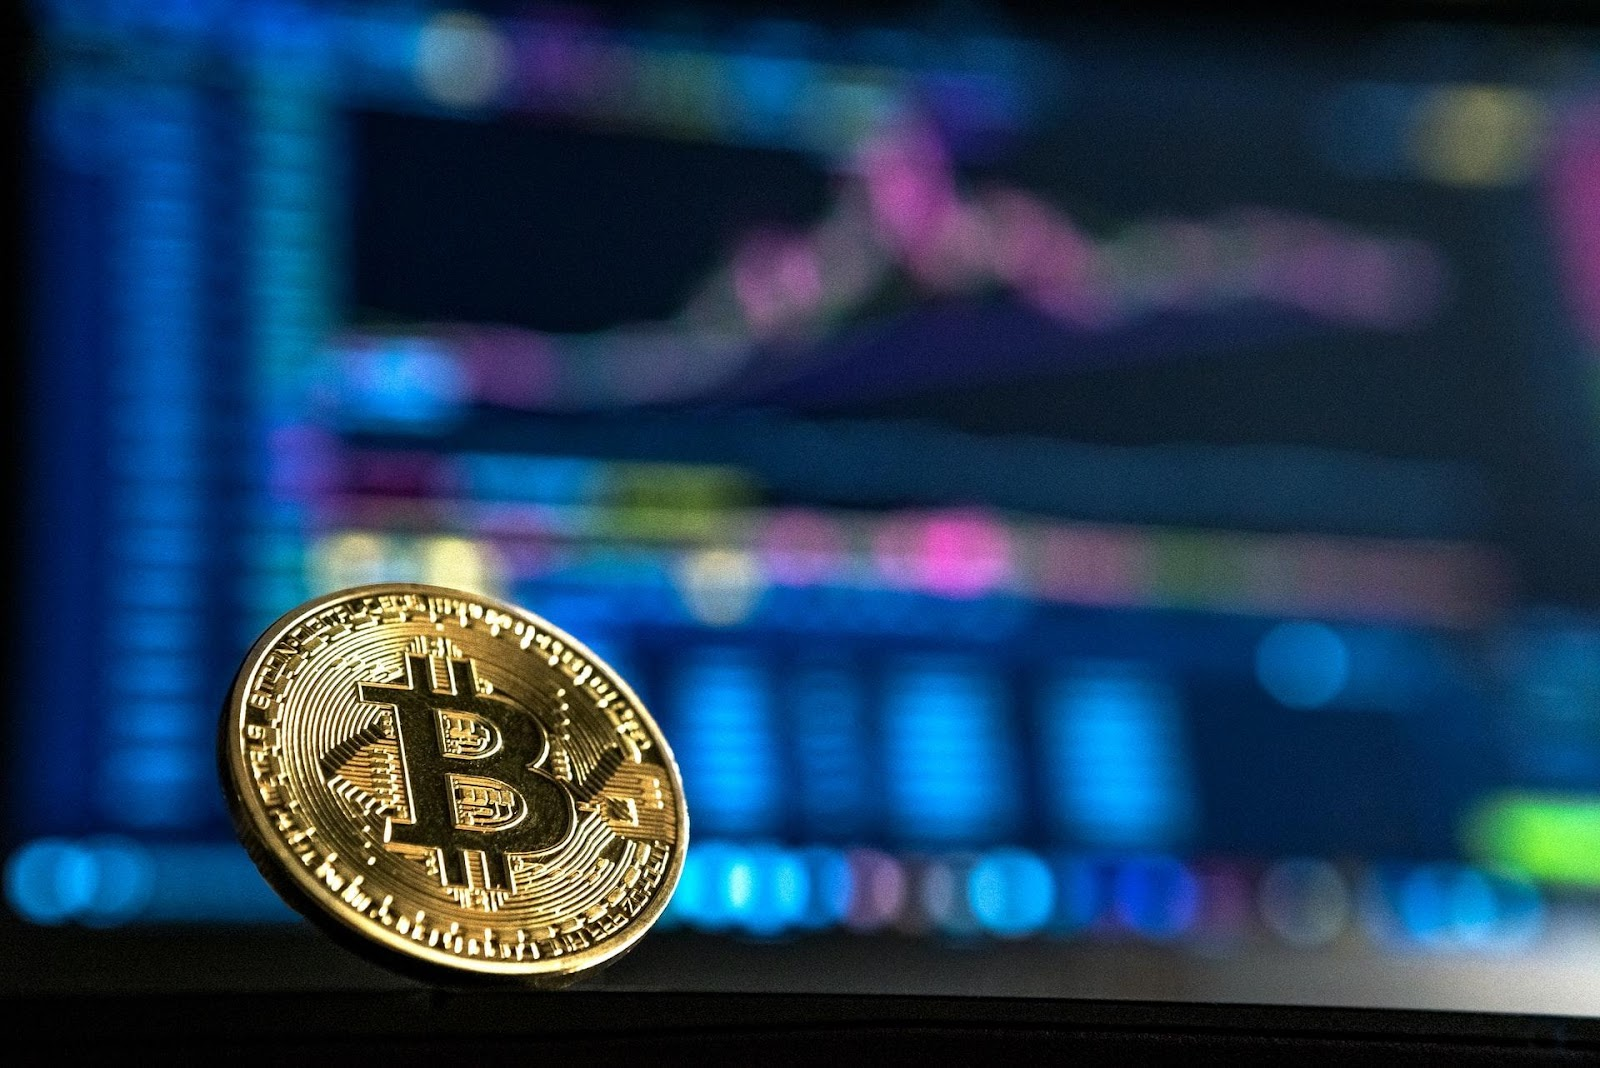 Where Can I Get Paid Crypto Signals: Complete Guide for Traders